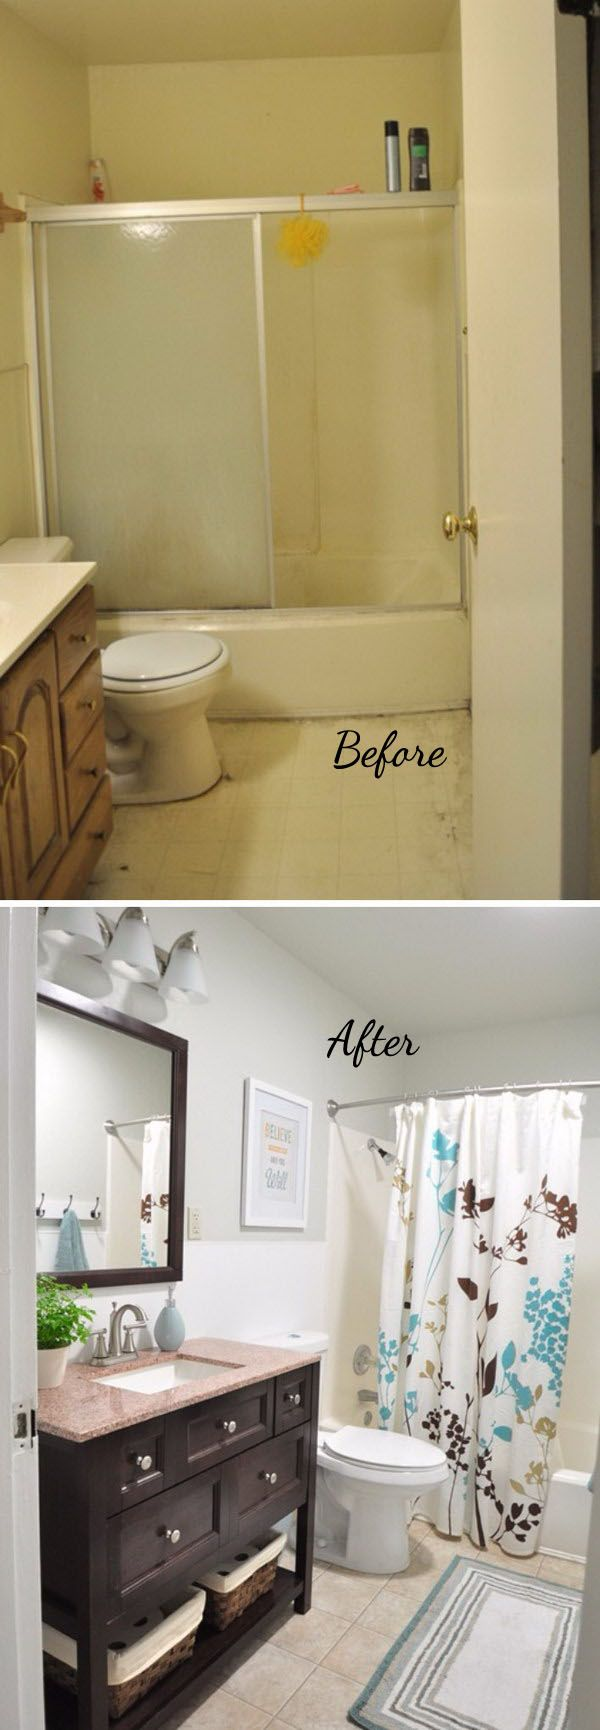 Bathroom shower ideas on a budget - Forget About Your Old Bathroom Let Make Everything New Www Gorgeoustubs Com Sinks